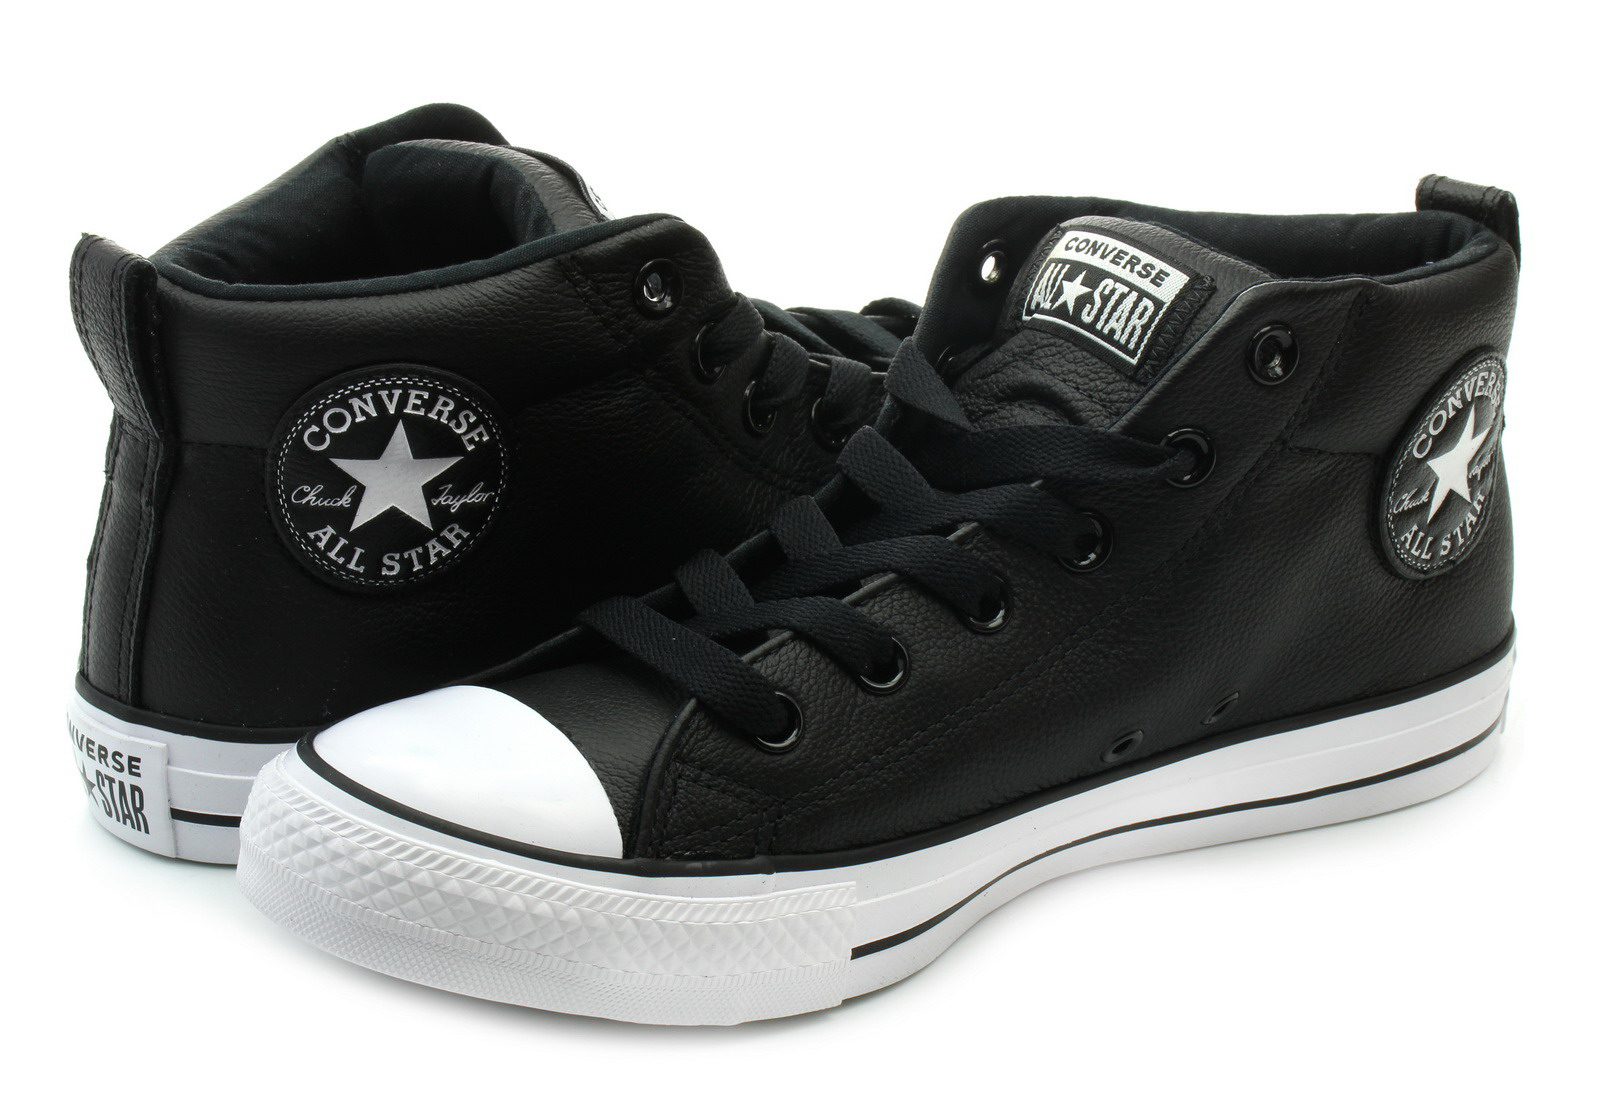 Converse Sneakers - Chuck Taylor All Star Street Mid - 143727C ... df4e1aed7e